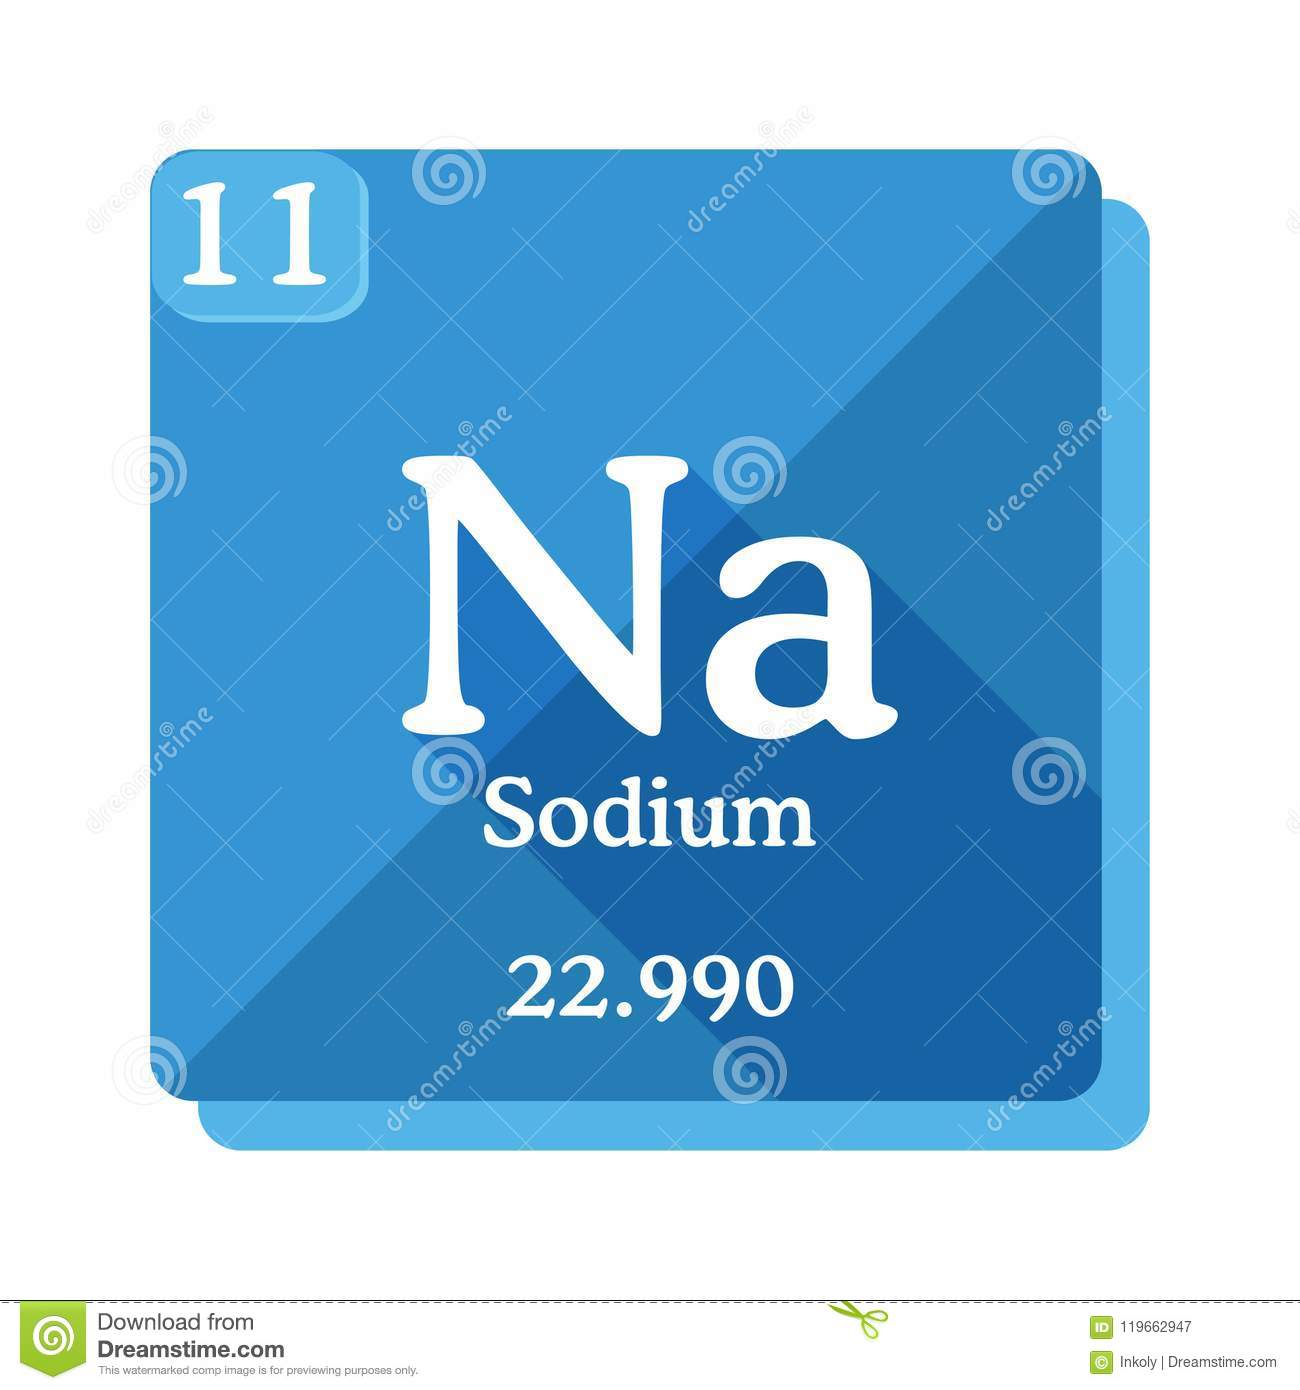 Sodium chemical element periodic table of the elements stock download sodium chemical element periodic table of the elements stock illustration illustration of urtaz Image collections